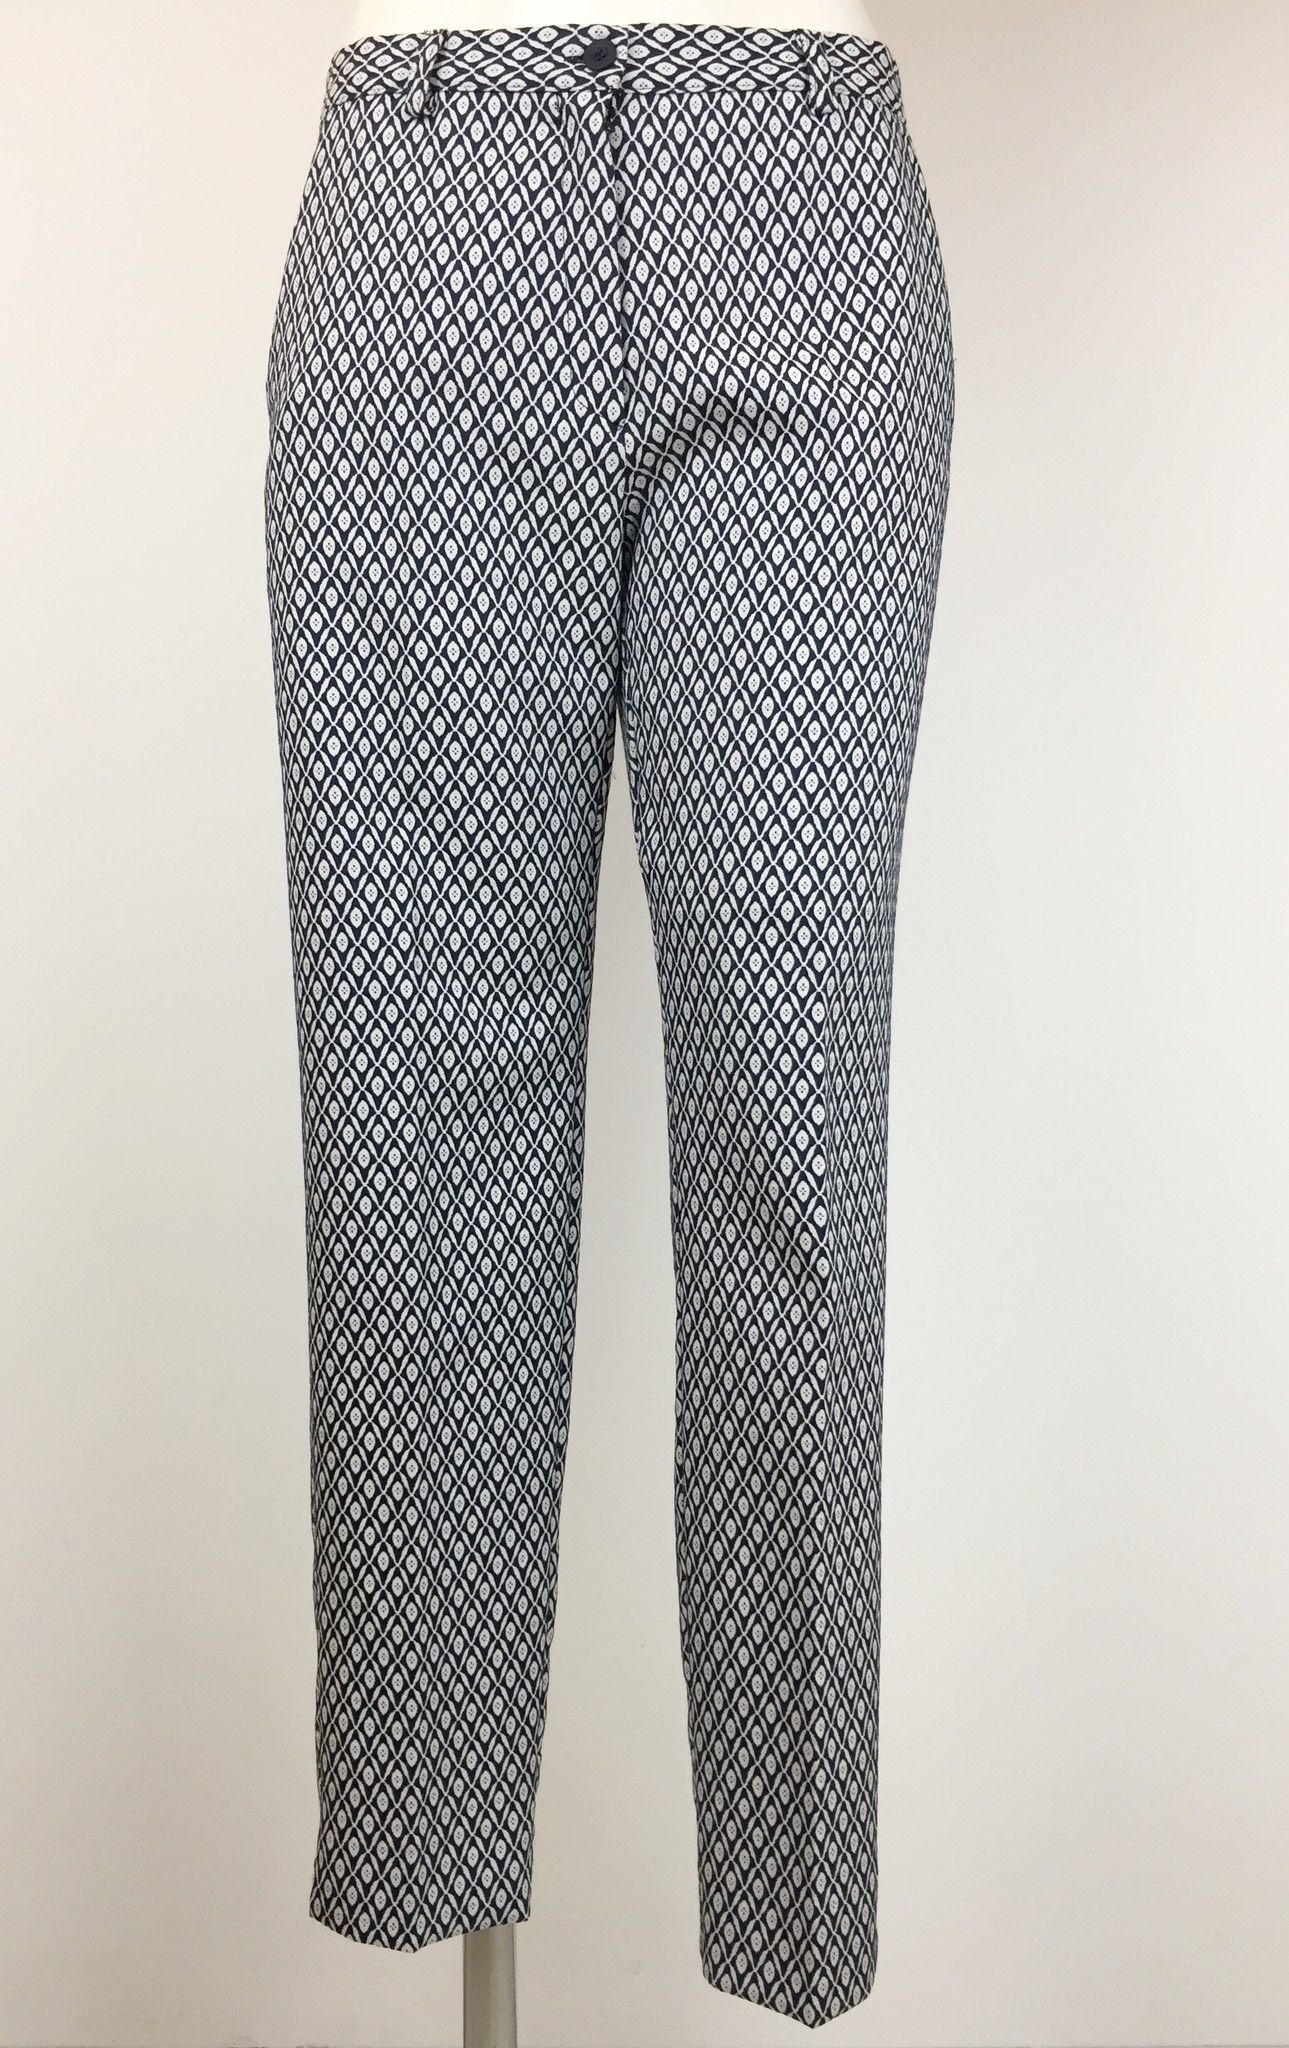 Daniel & Mayer Capri Model Trousers Cod.DM87451